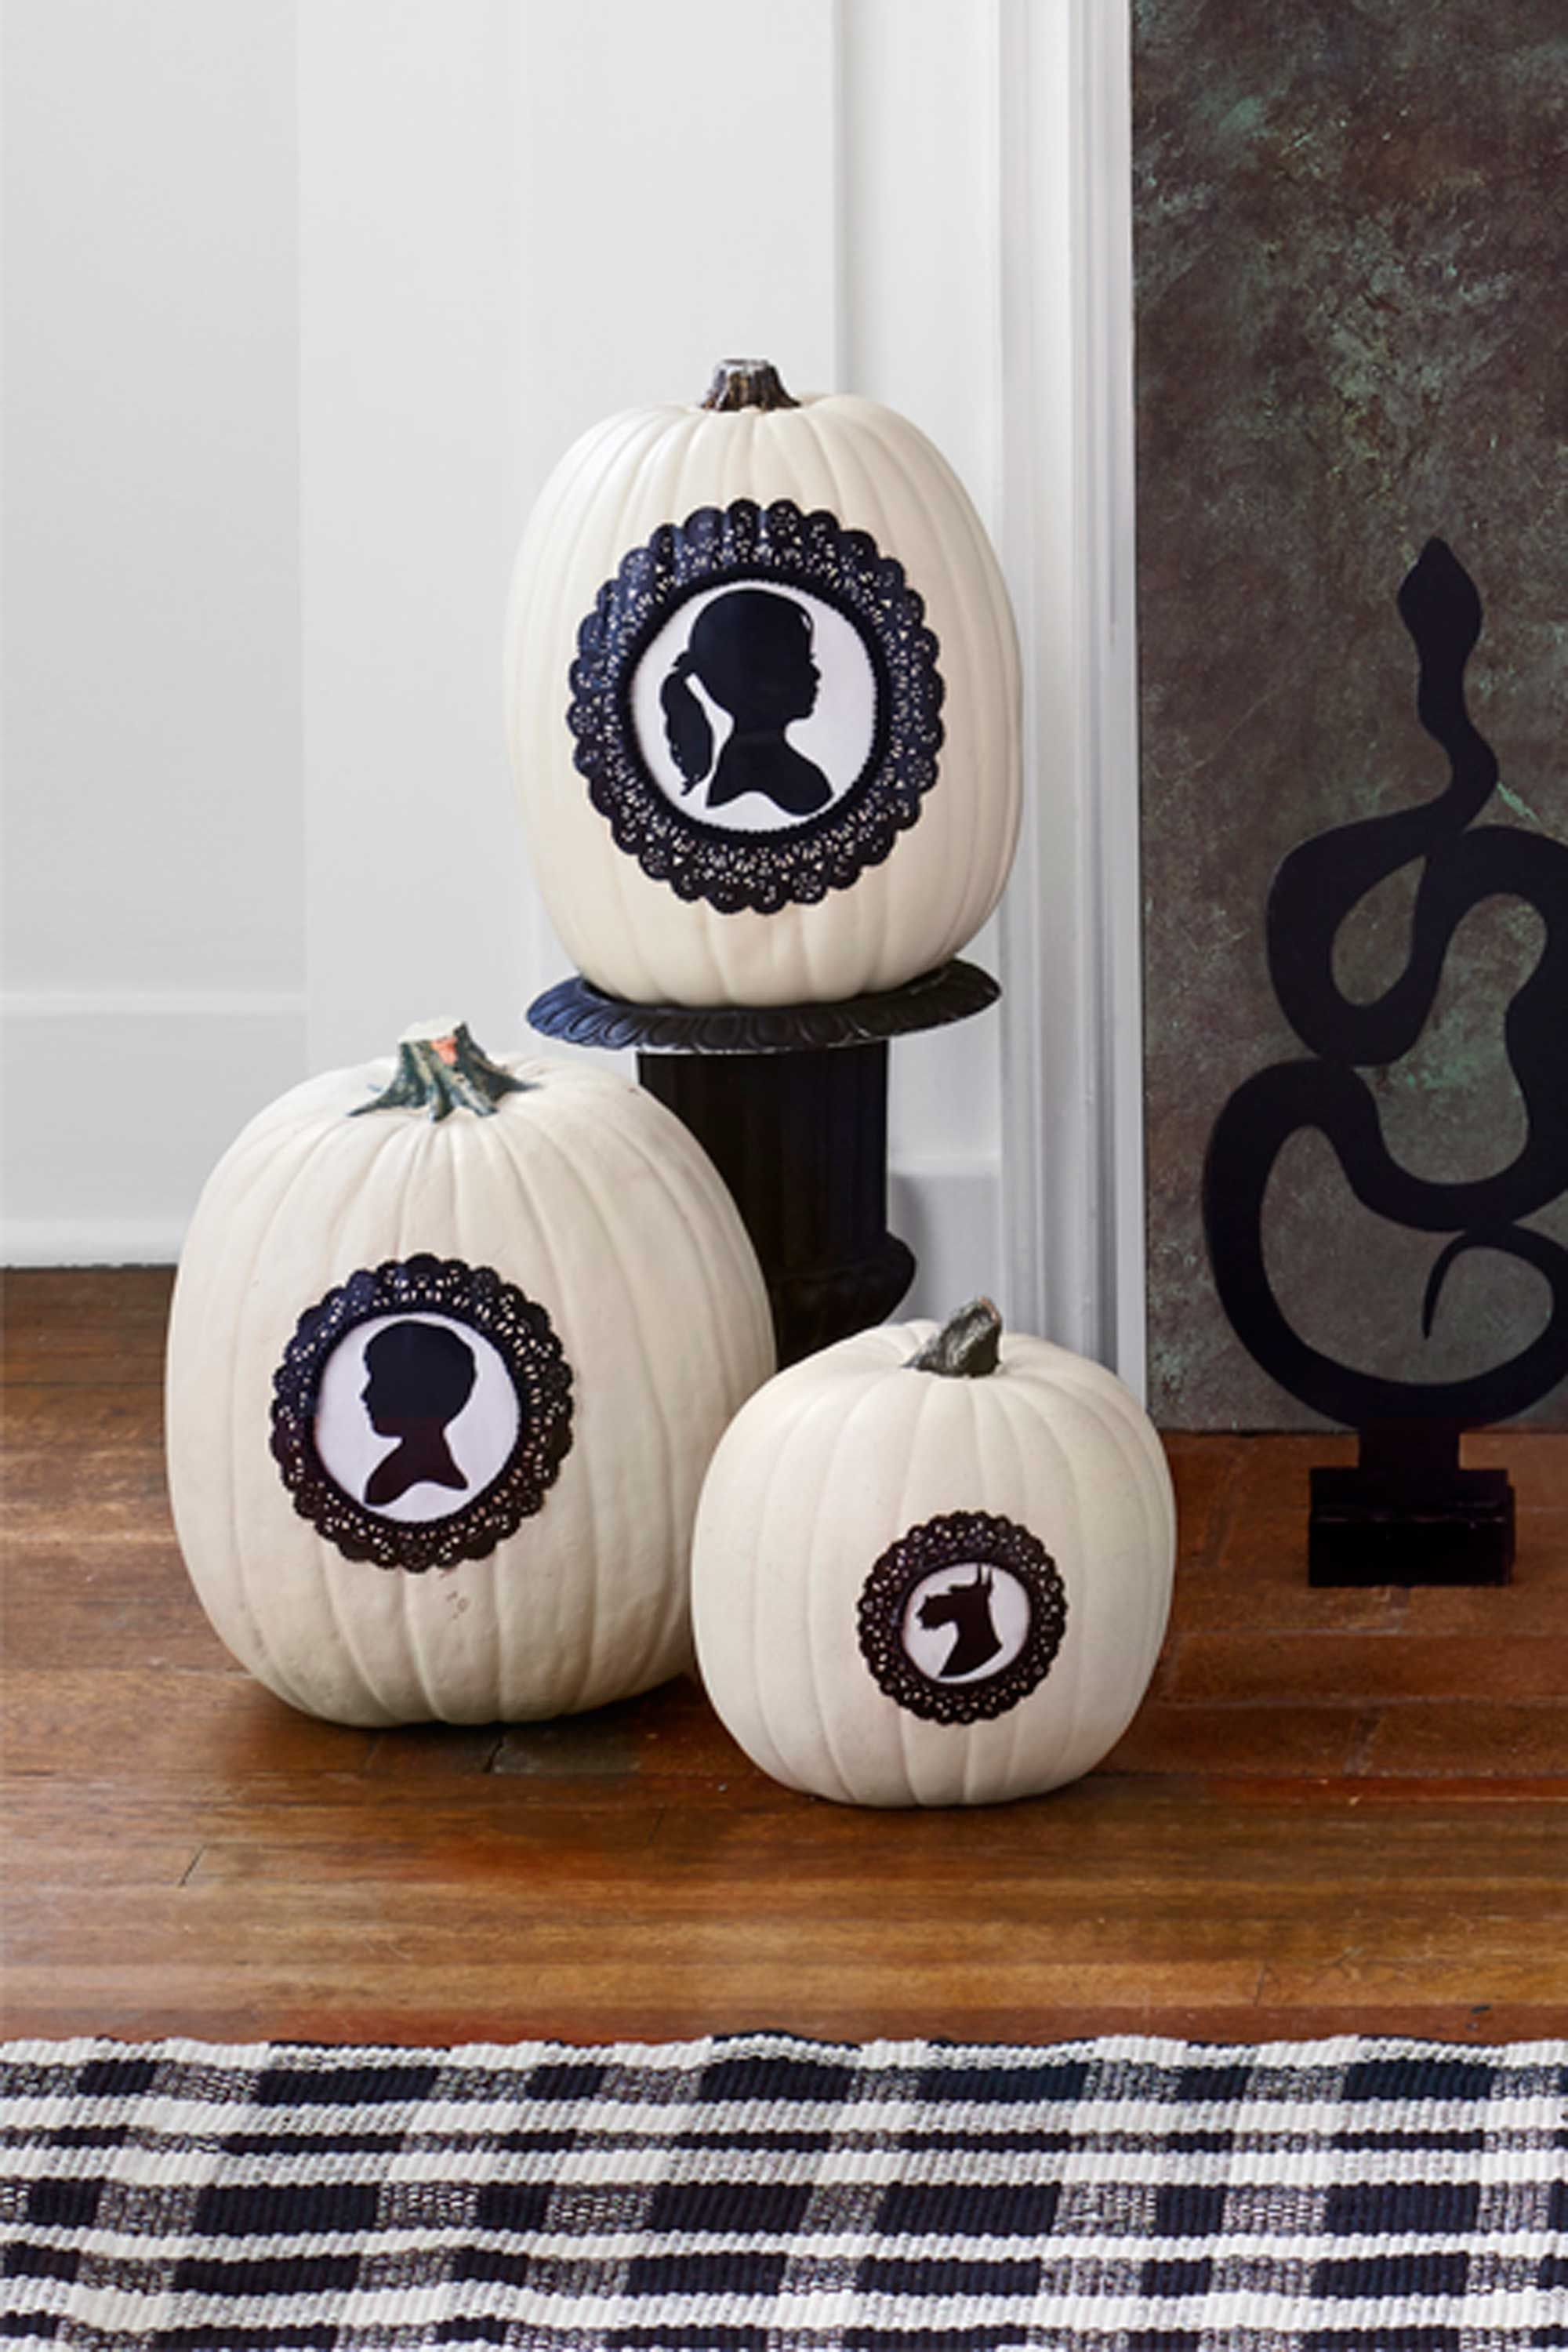 45 Fun Halloween Party Decorating Ideas